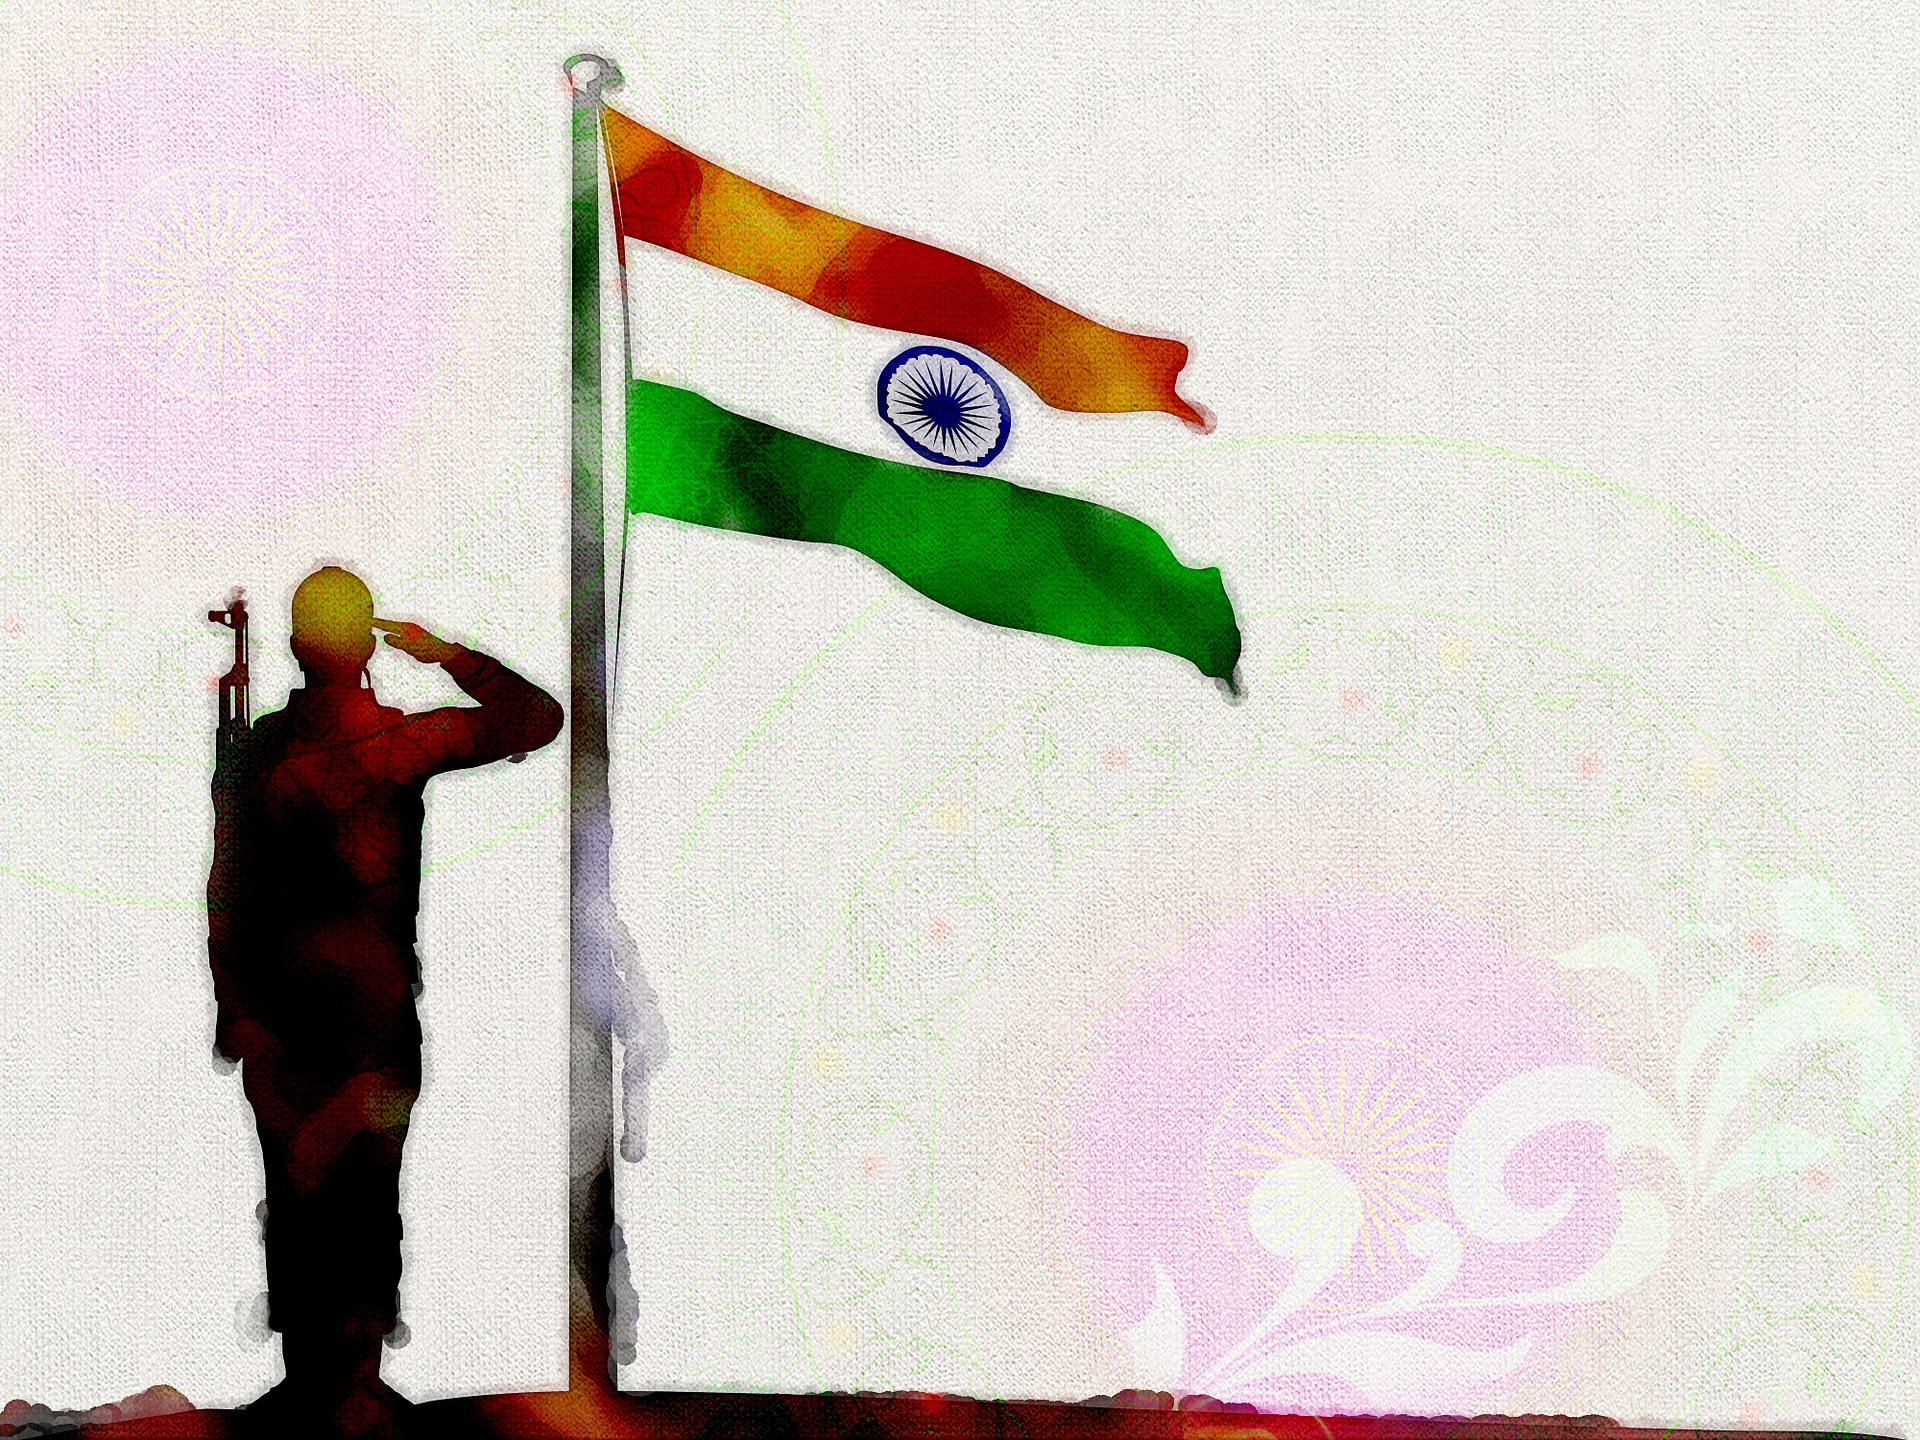 Patriotic Poetry In Hindi Patriotic Poetry In Hindi Patriotic Poetry In Hindi Patriotic Poetry In Hindi Patriotic Poetry In Hindi Patriotic Poetry In Hindi Patriotic Poetry In Hindi Patriotic Poetry In Hindi Patriotic Poetry In Hindi Patriotic Poetry In HindiPatriotic Poetry In Hindi Patriotic Poetry In Hindi Patriotic Poetry In Hindi Patriotic Poetry In Hindi Patriotic Poetry In Hindi Patriotic Poetry In Hindi Patriotic Poetry In Hindi Patriotic Poetry In Hindi Patriotic Poetry In Hindi Patriotic Poetry In Hindi Patriotic Poetry In Hindi Patriotic Poetry In Hindi Patriotic Poetry In HindiPatriotic Poetry In Hindi Patriotic Poetry In Hindi Patriotic Poetry In Hindi